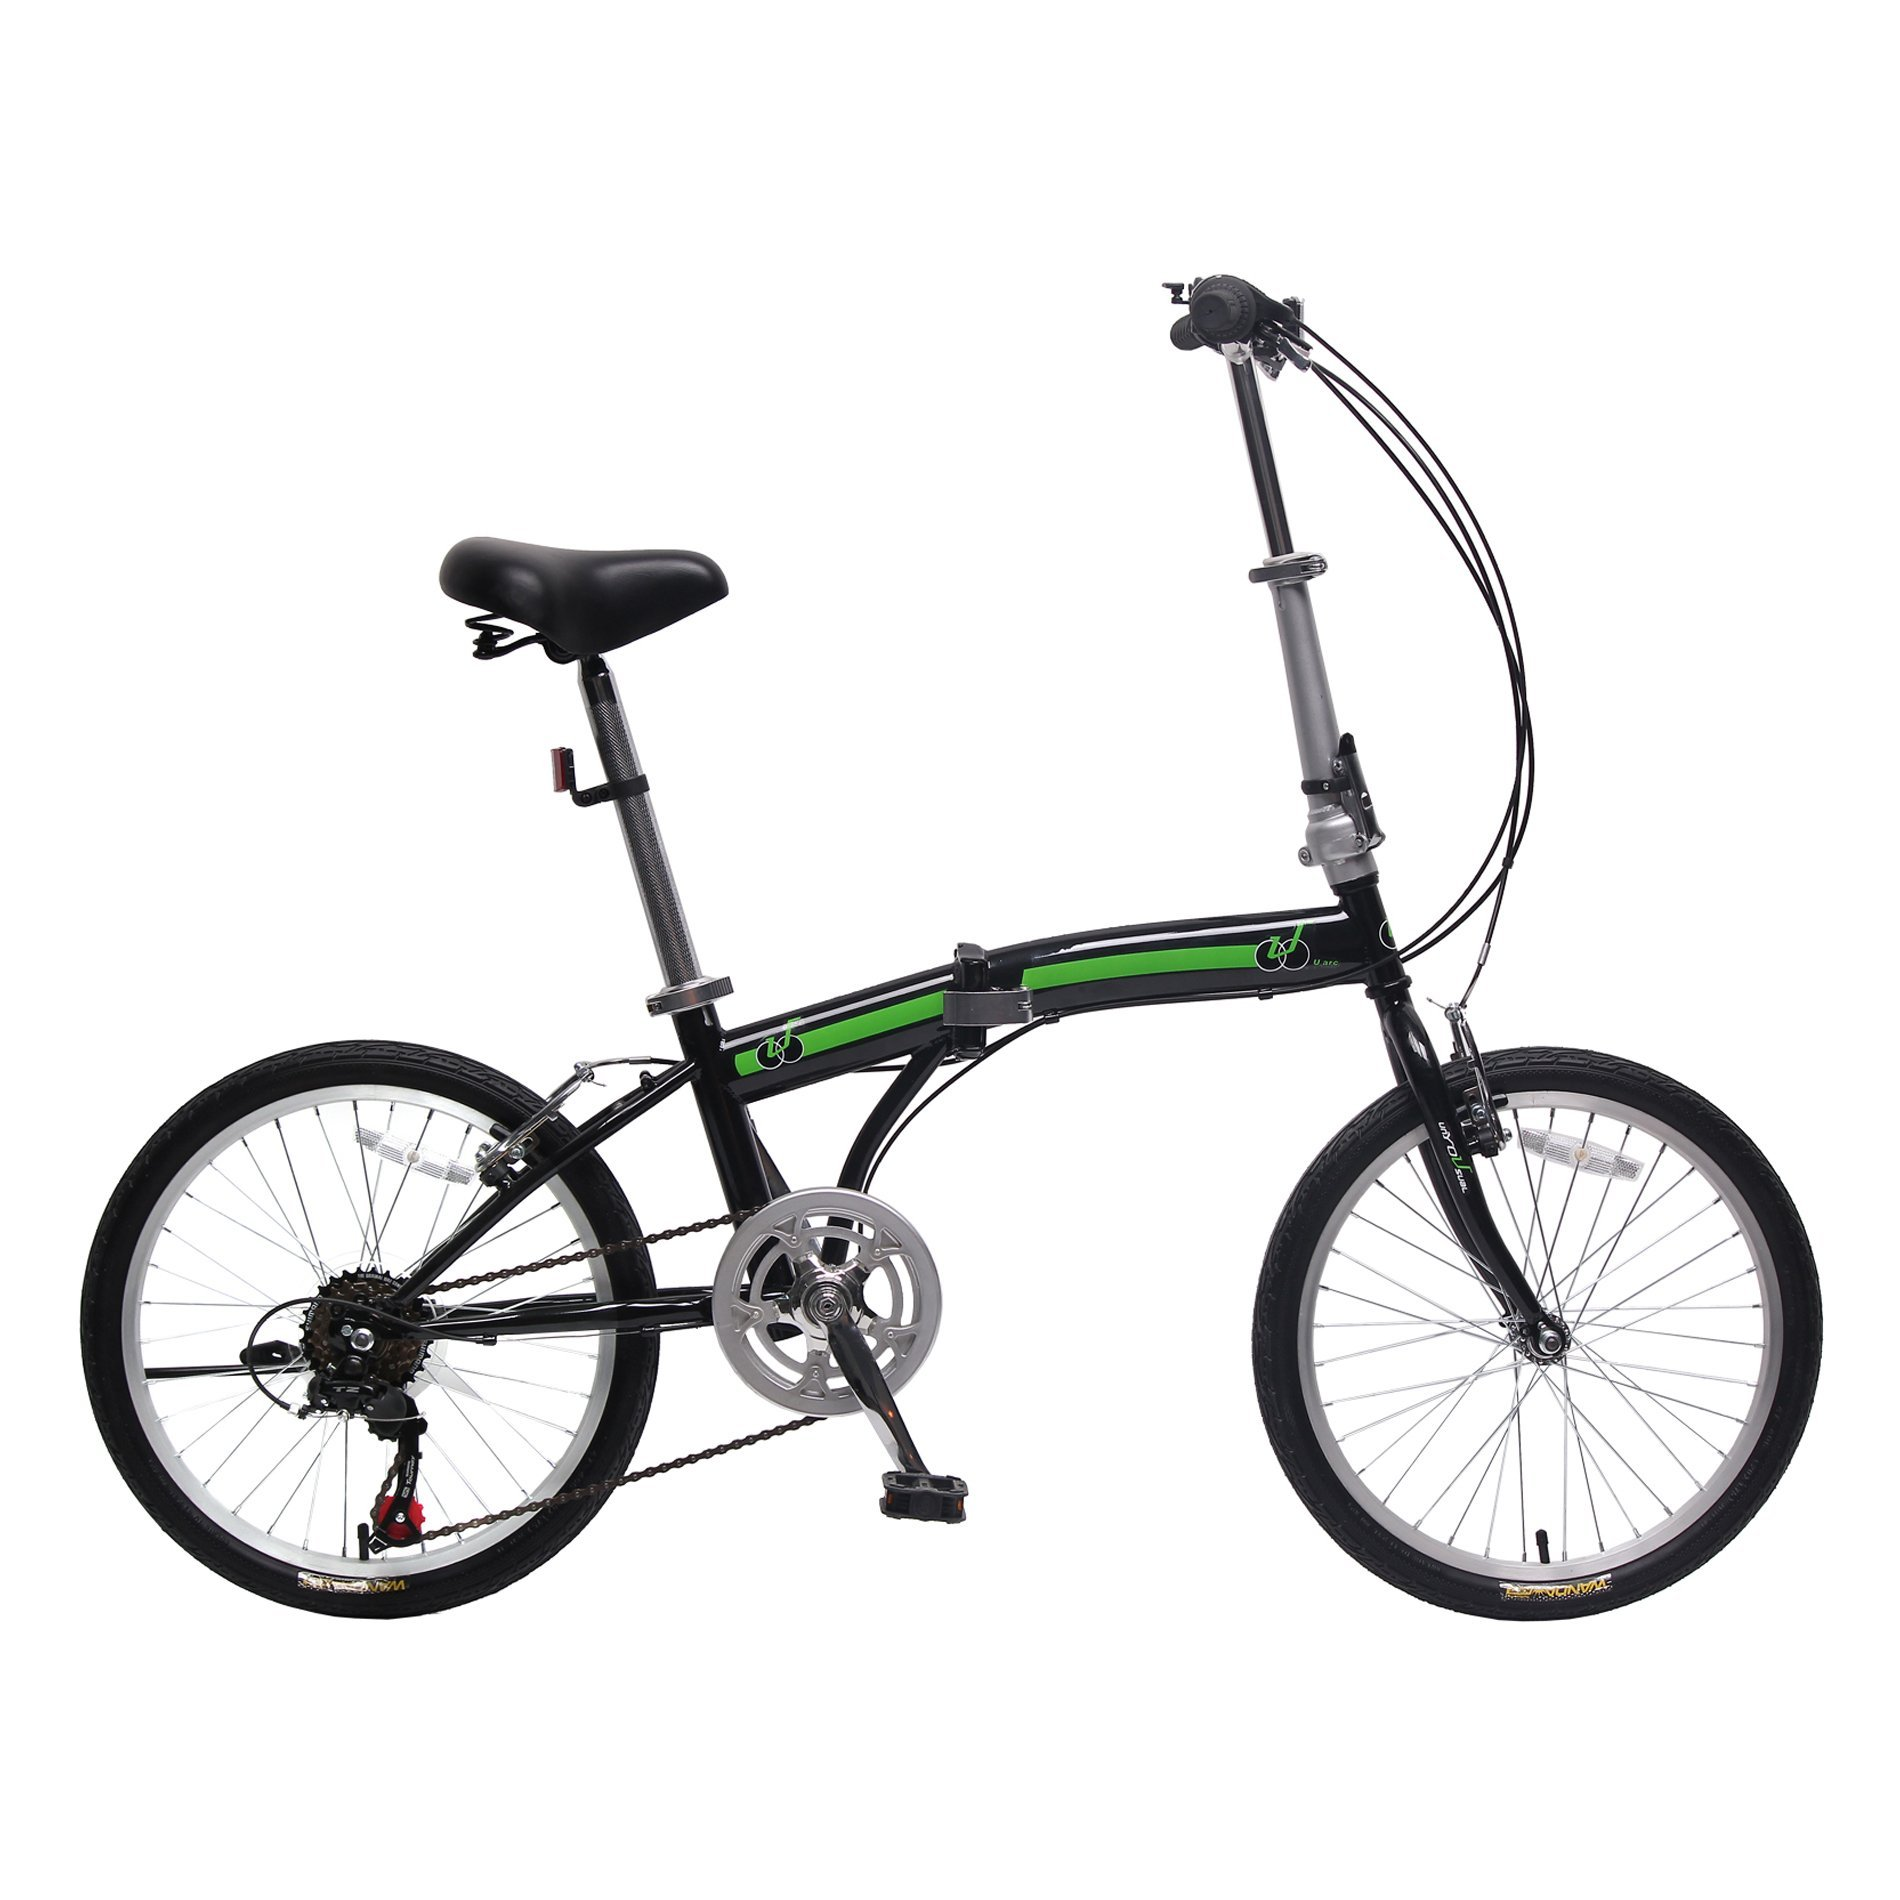 IDS Home Unyousual Folding Bicycle